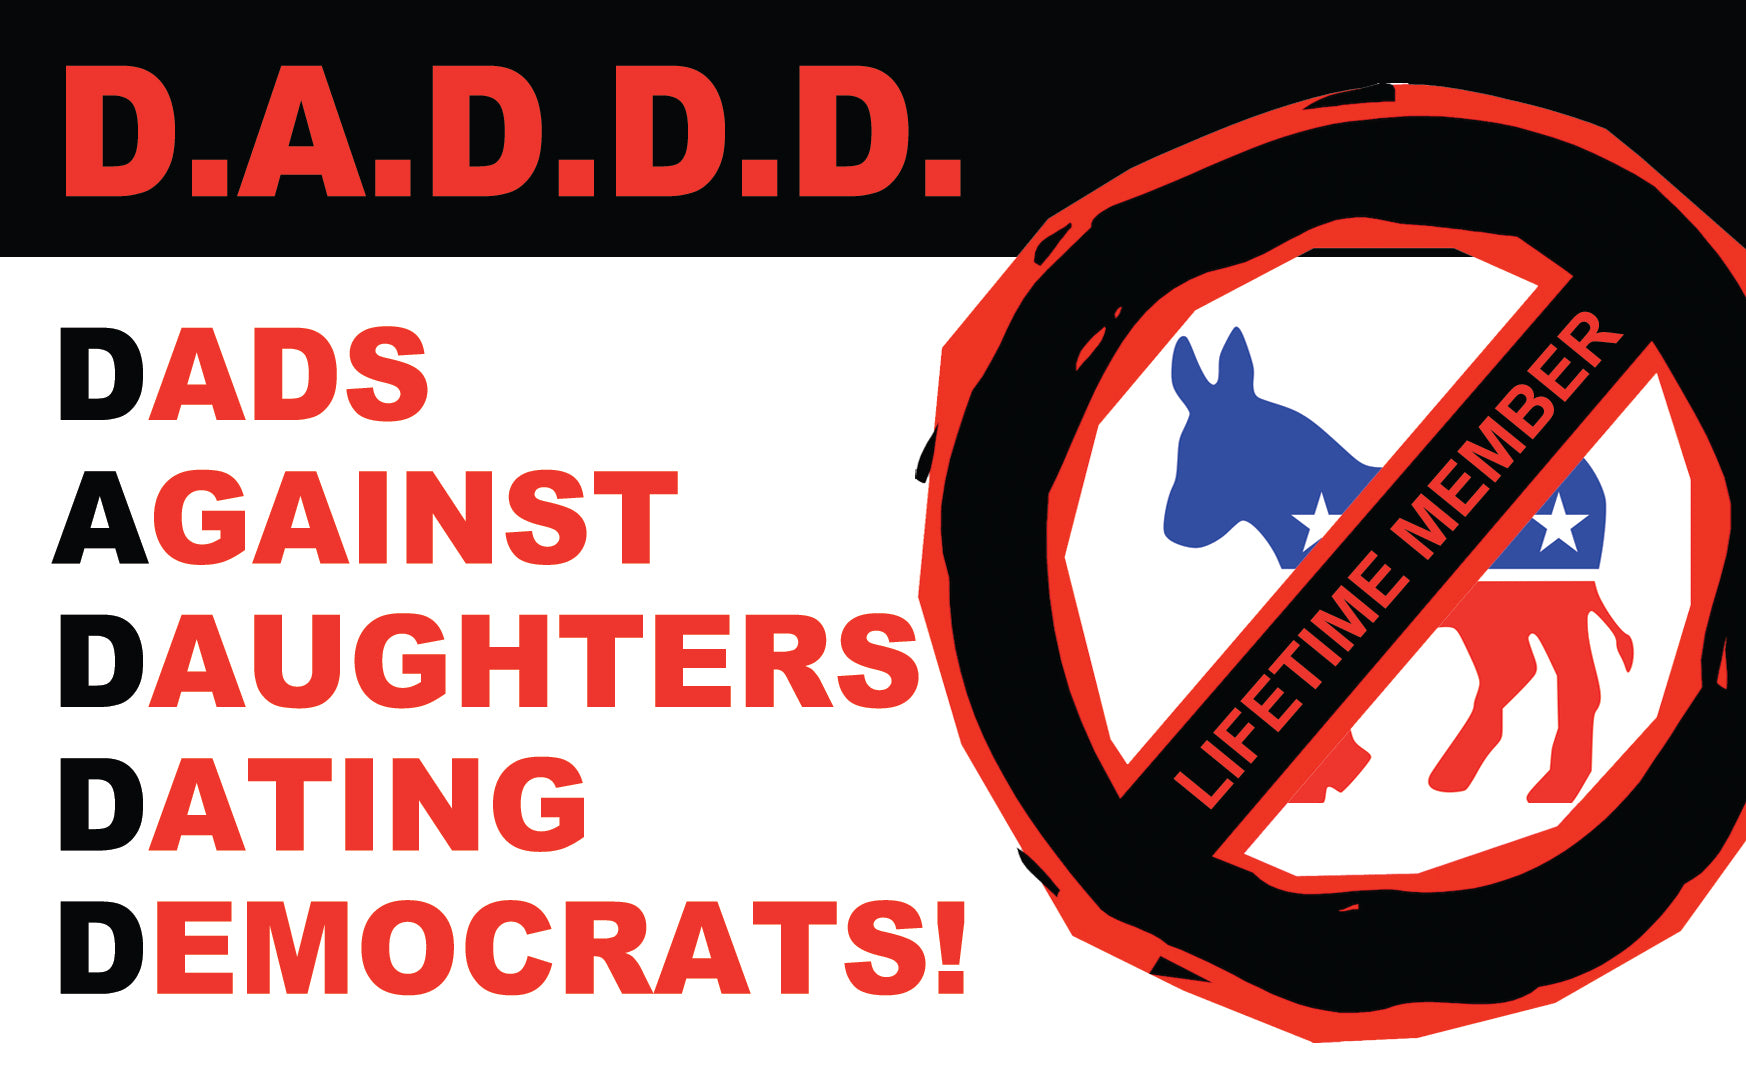 Dads against daughters dating sticker